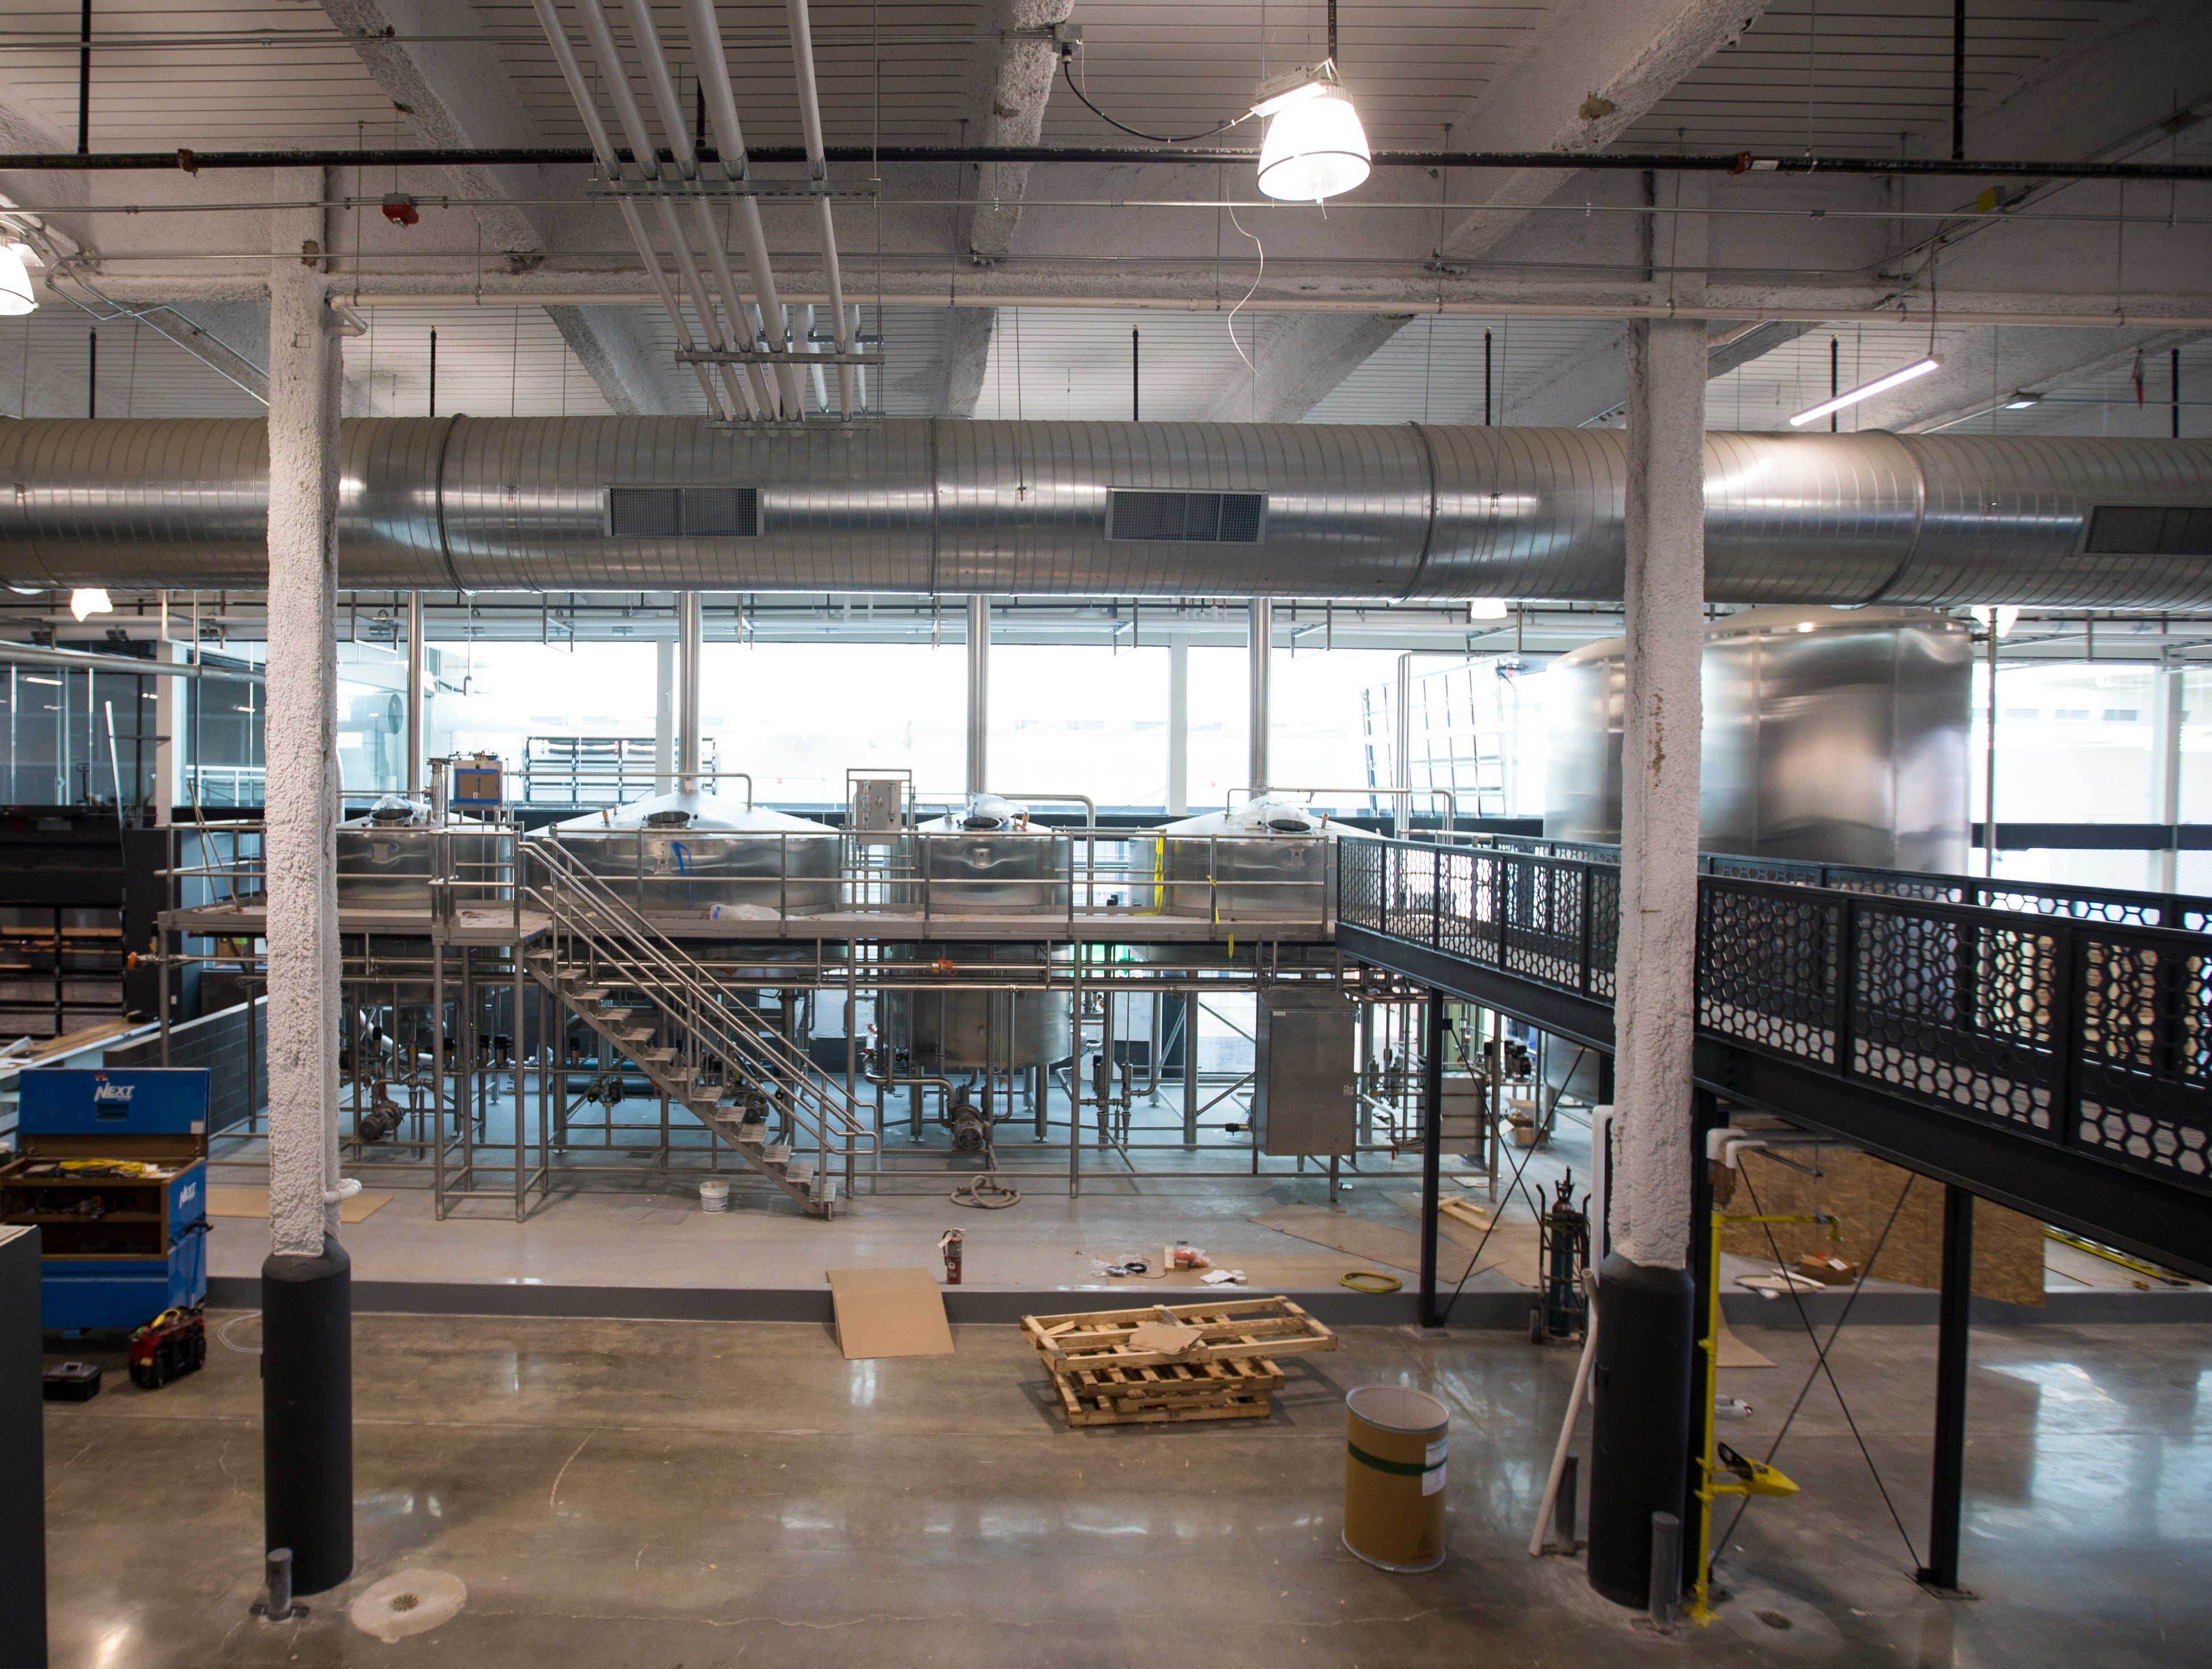 The brewing side at the new MKE Brewing has glass walls that allow customers to view the brewing process. Rockwell Automation will provide explanations of the process at each step.